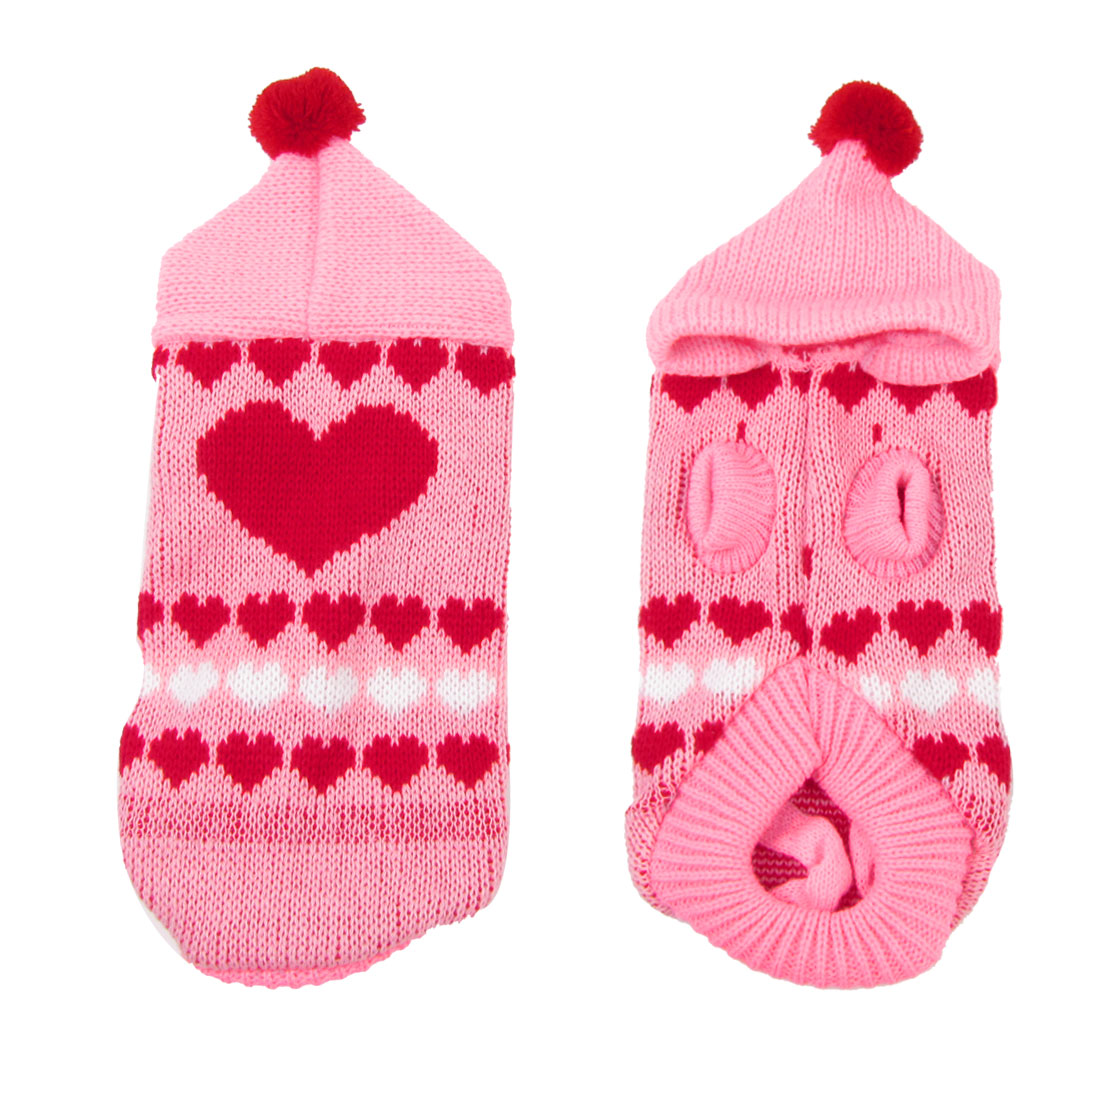 Warm Hoodie Heart Print Knitted Chihuaha Dog Sweater Clothes Pink S